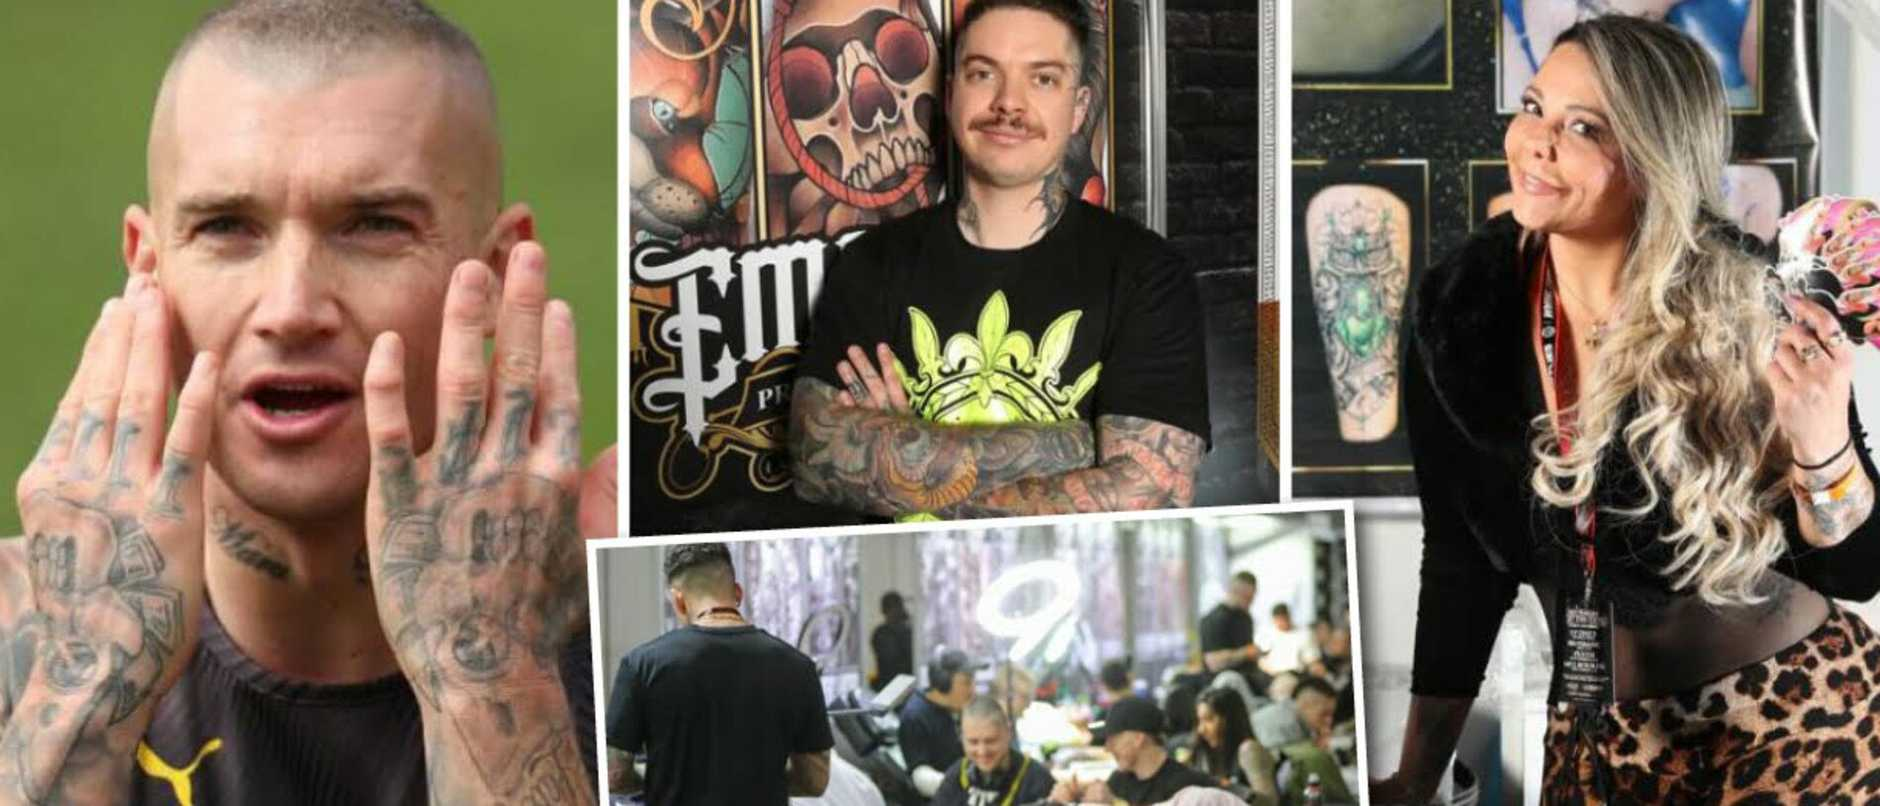 Australians are spending an arm and a leg to get tattoos inspired by footballers and actors.